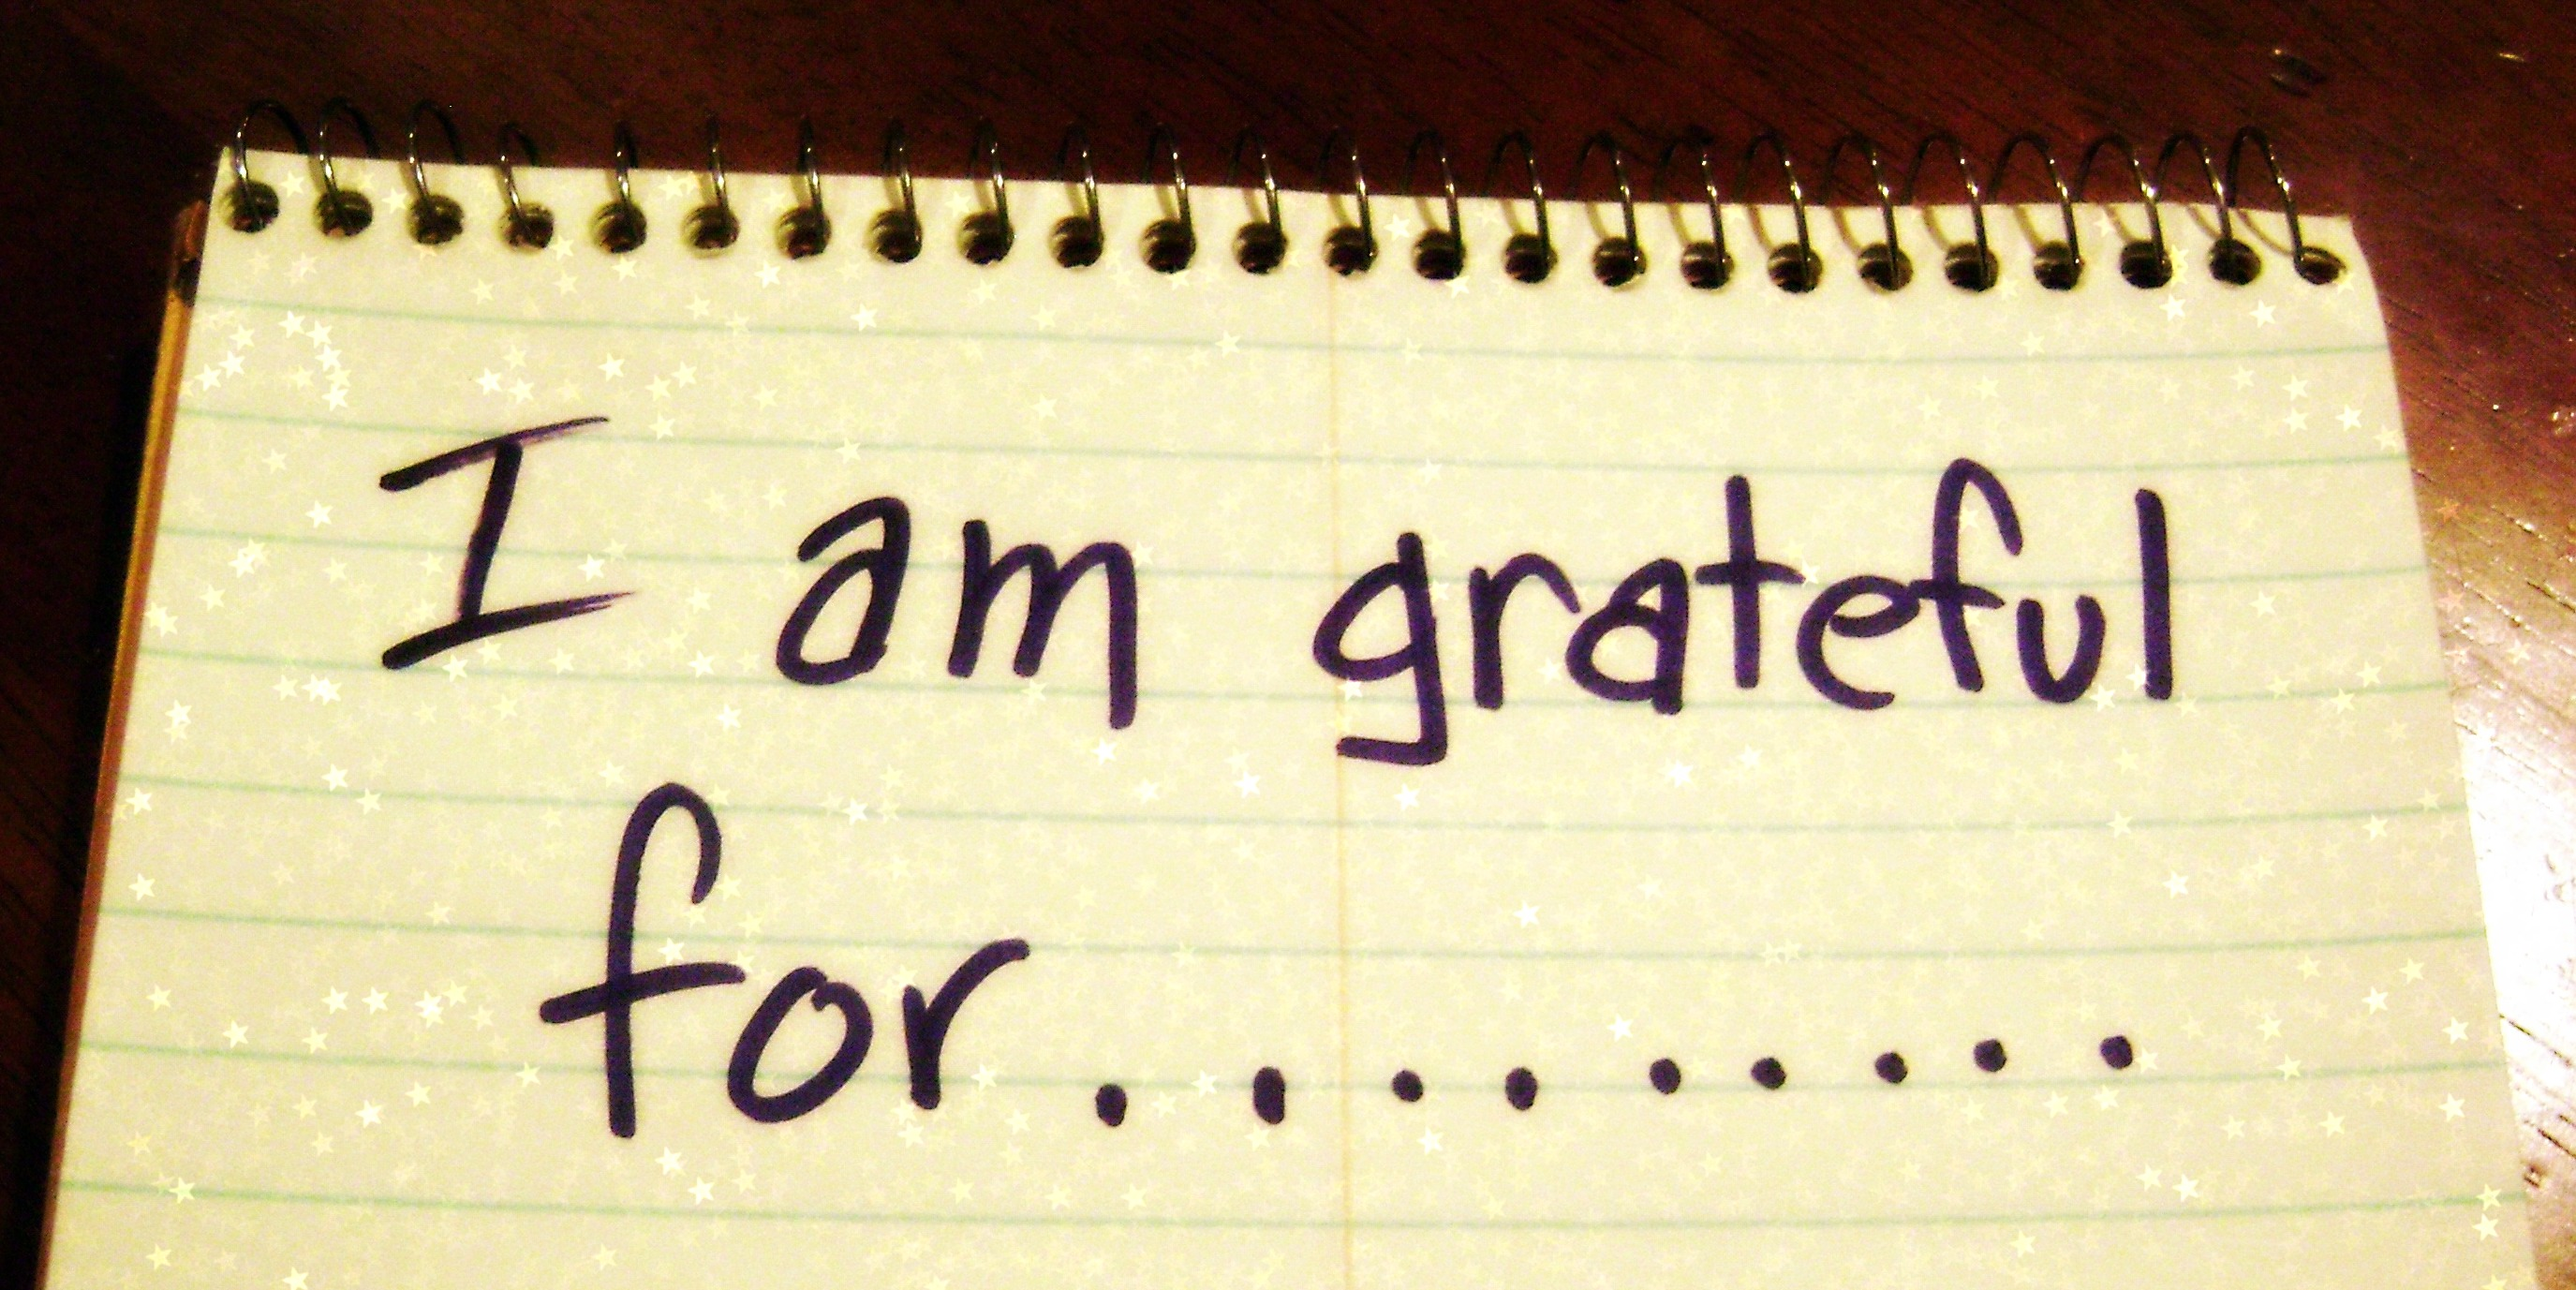 I am grateful for...